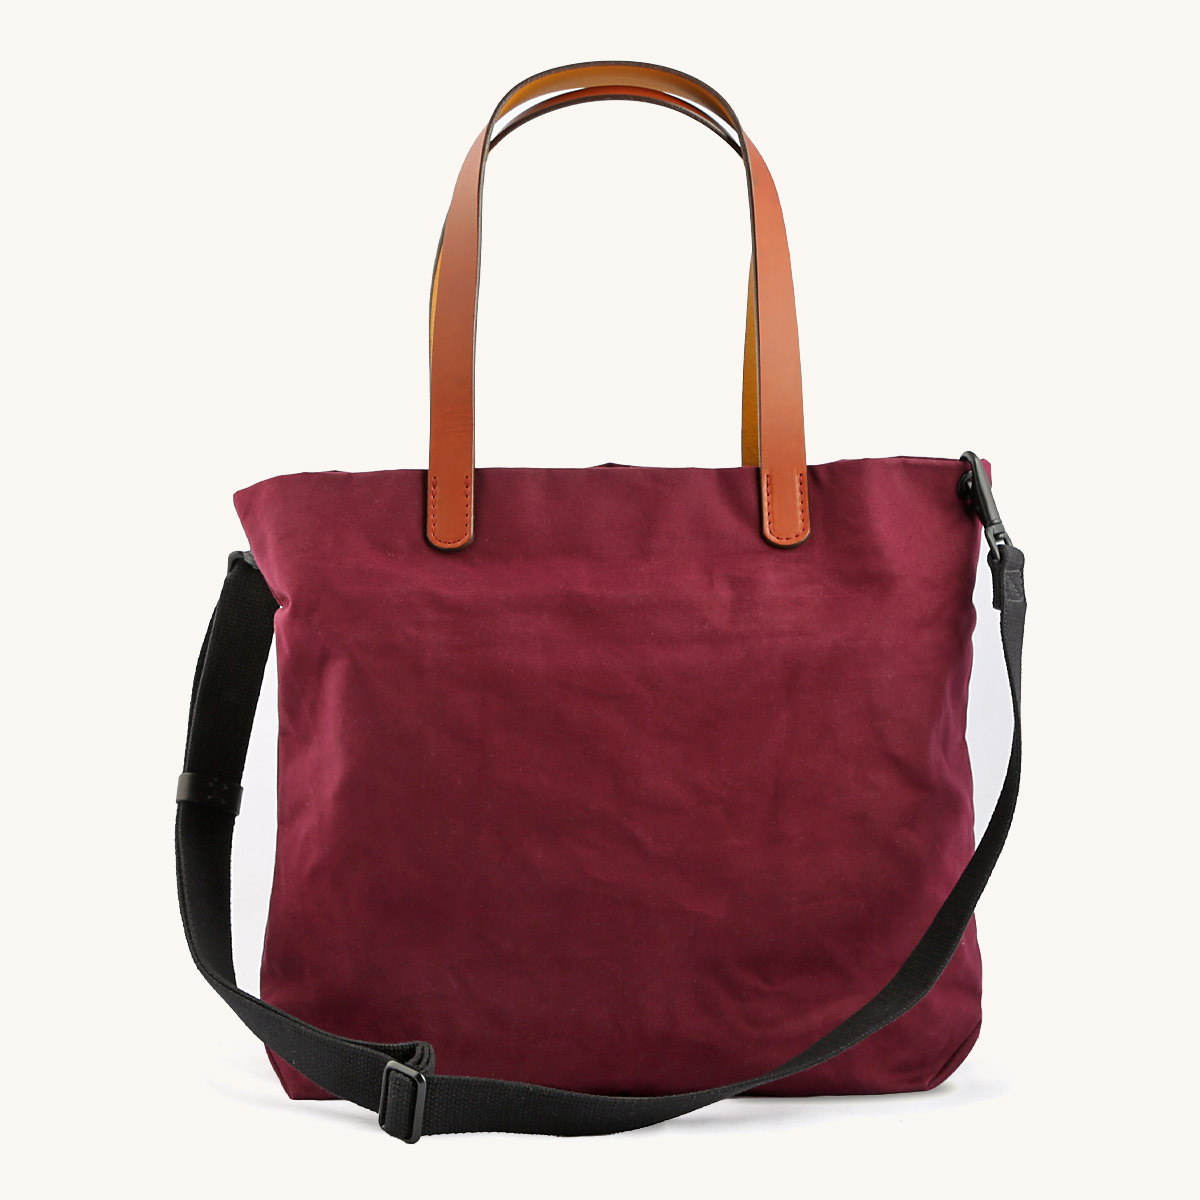 Remix 91 Simple Tote